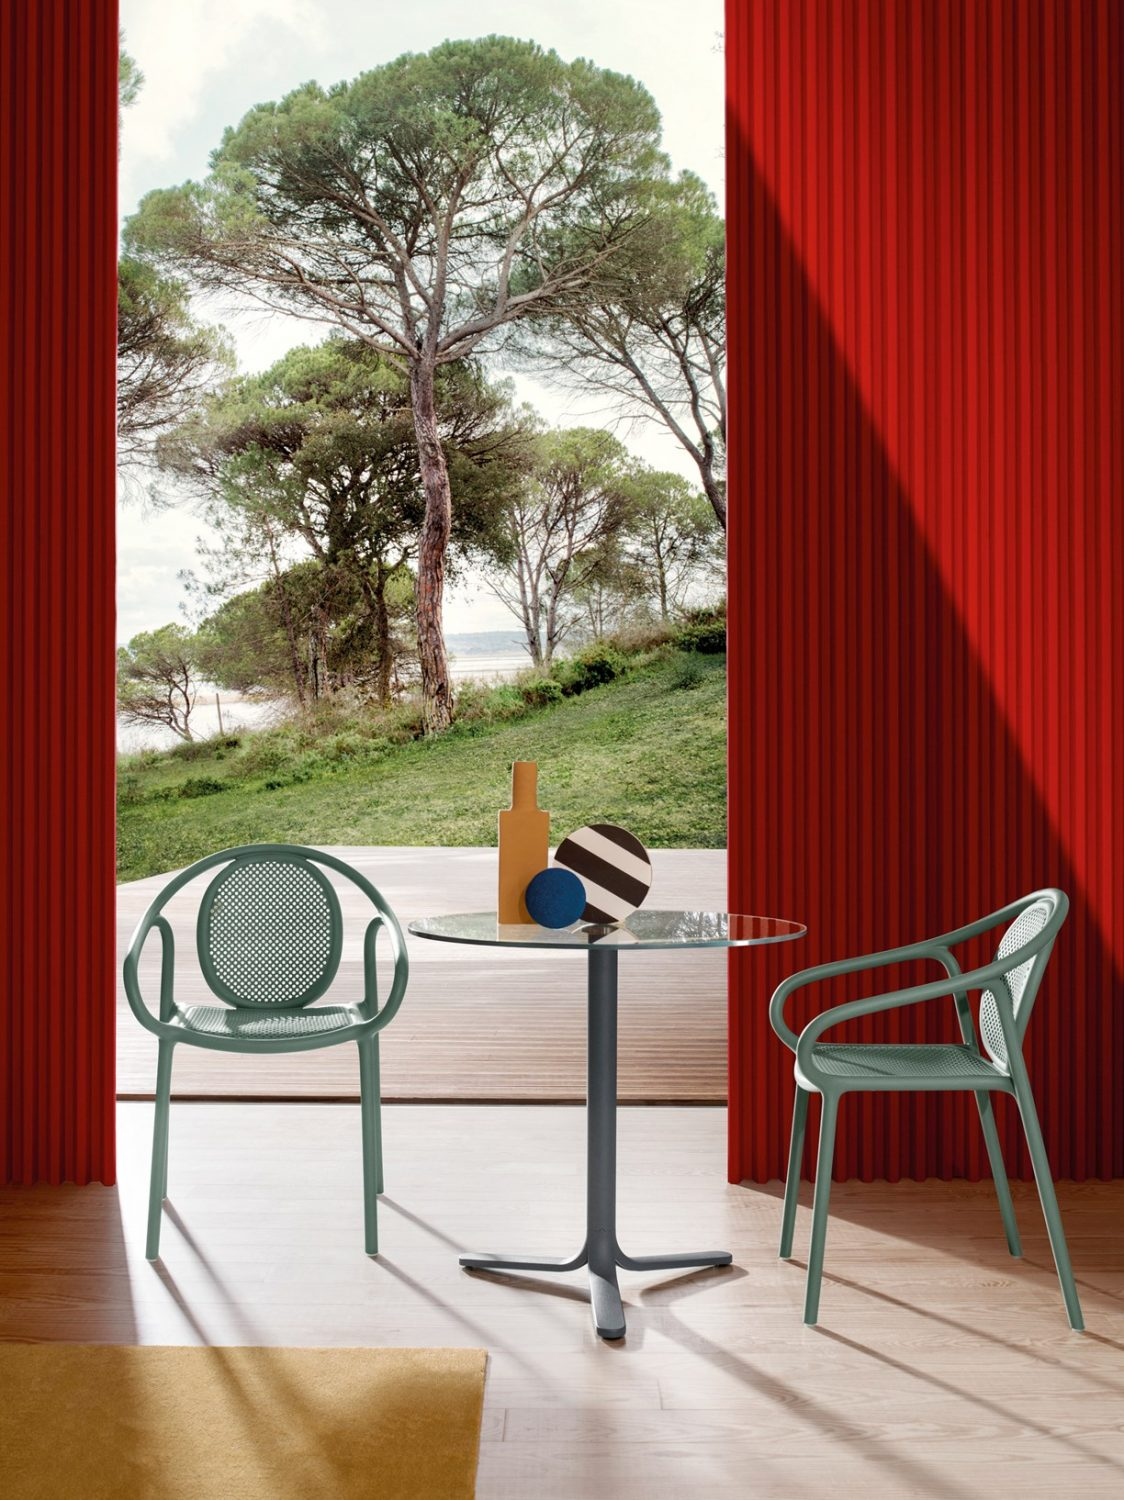 pedrali Fall In Love With Pedrali's New Indoor And Outdoor Collection fall love pedralis new indoor outdoor collection 5 scaled